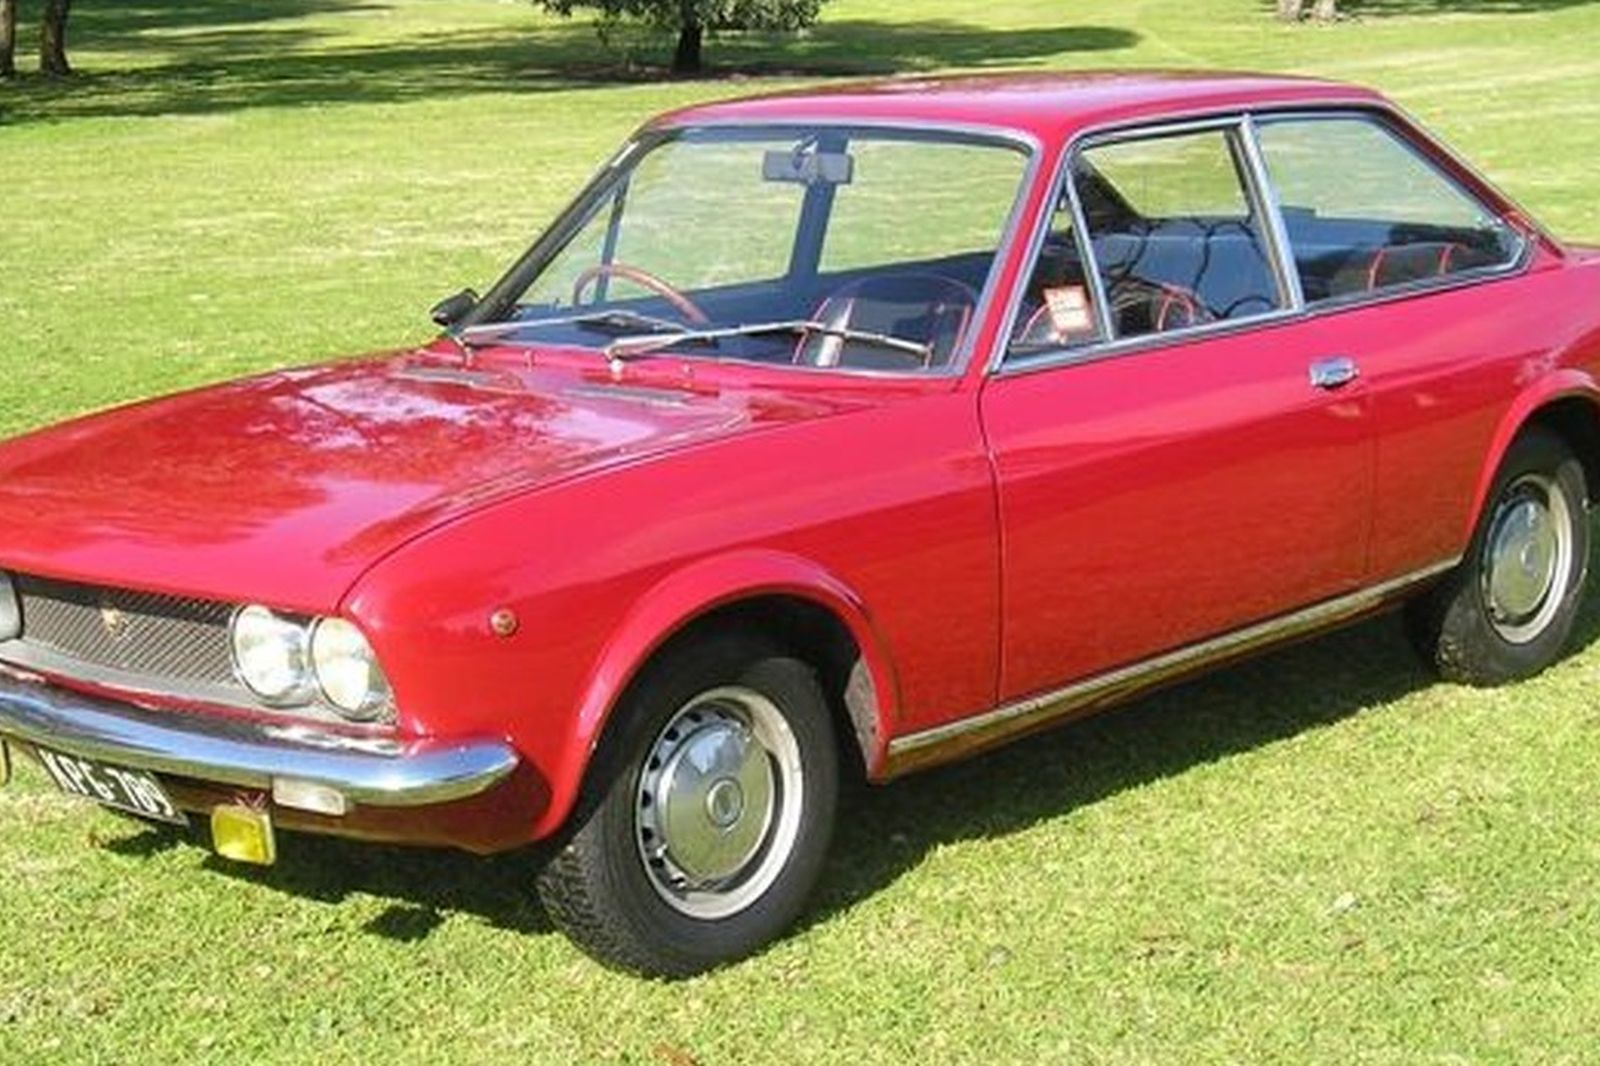 sold fiat 124bc sports coupe auctions lot 1 shannons. Black Bedroom Furniture Sets. Home Design Ideas